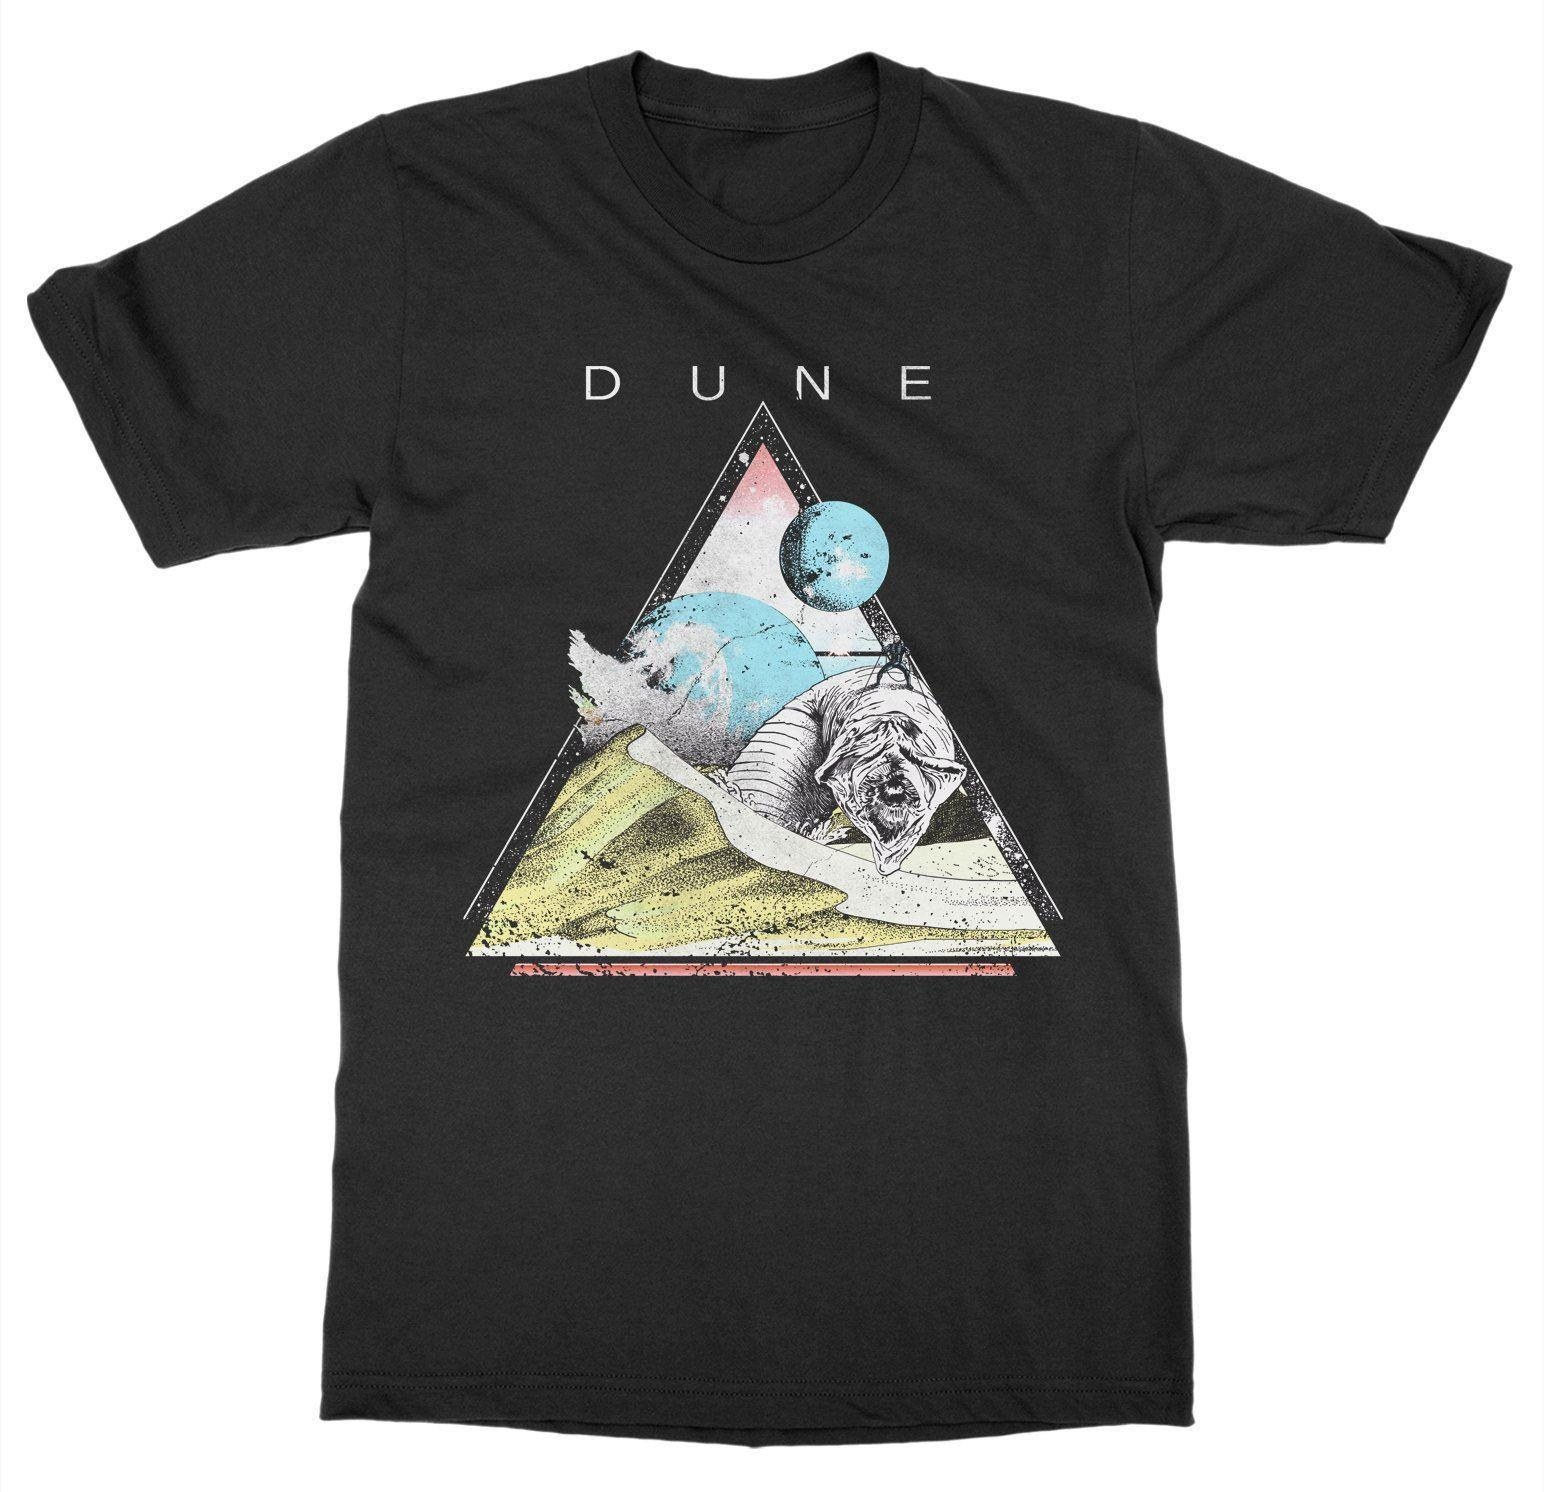 Dune T-Shirt Frank Herbert Book Classic Novel Gift Read Science Fiction SciFiFunny free shipping Unisex Casual Tshirt